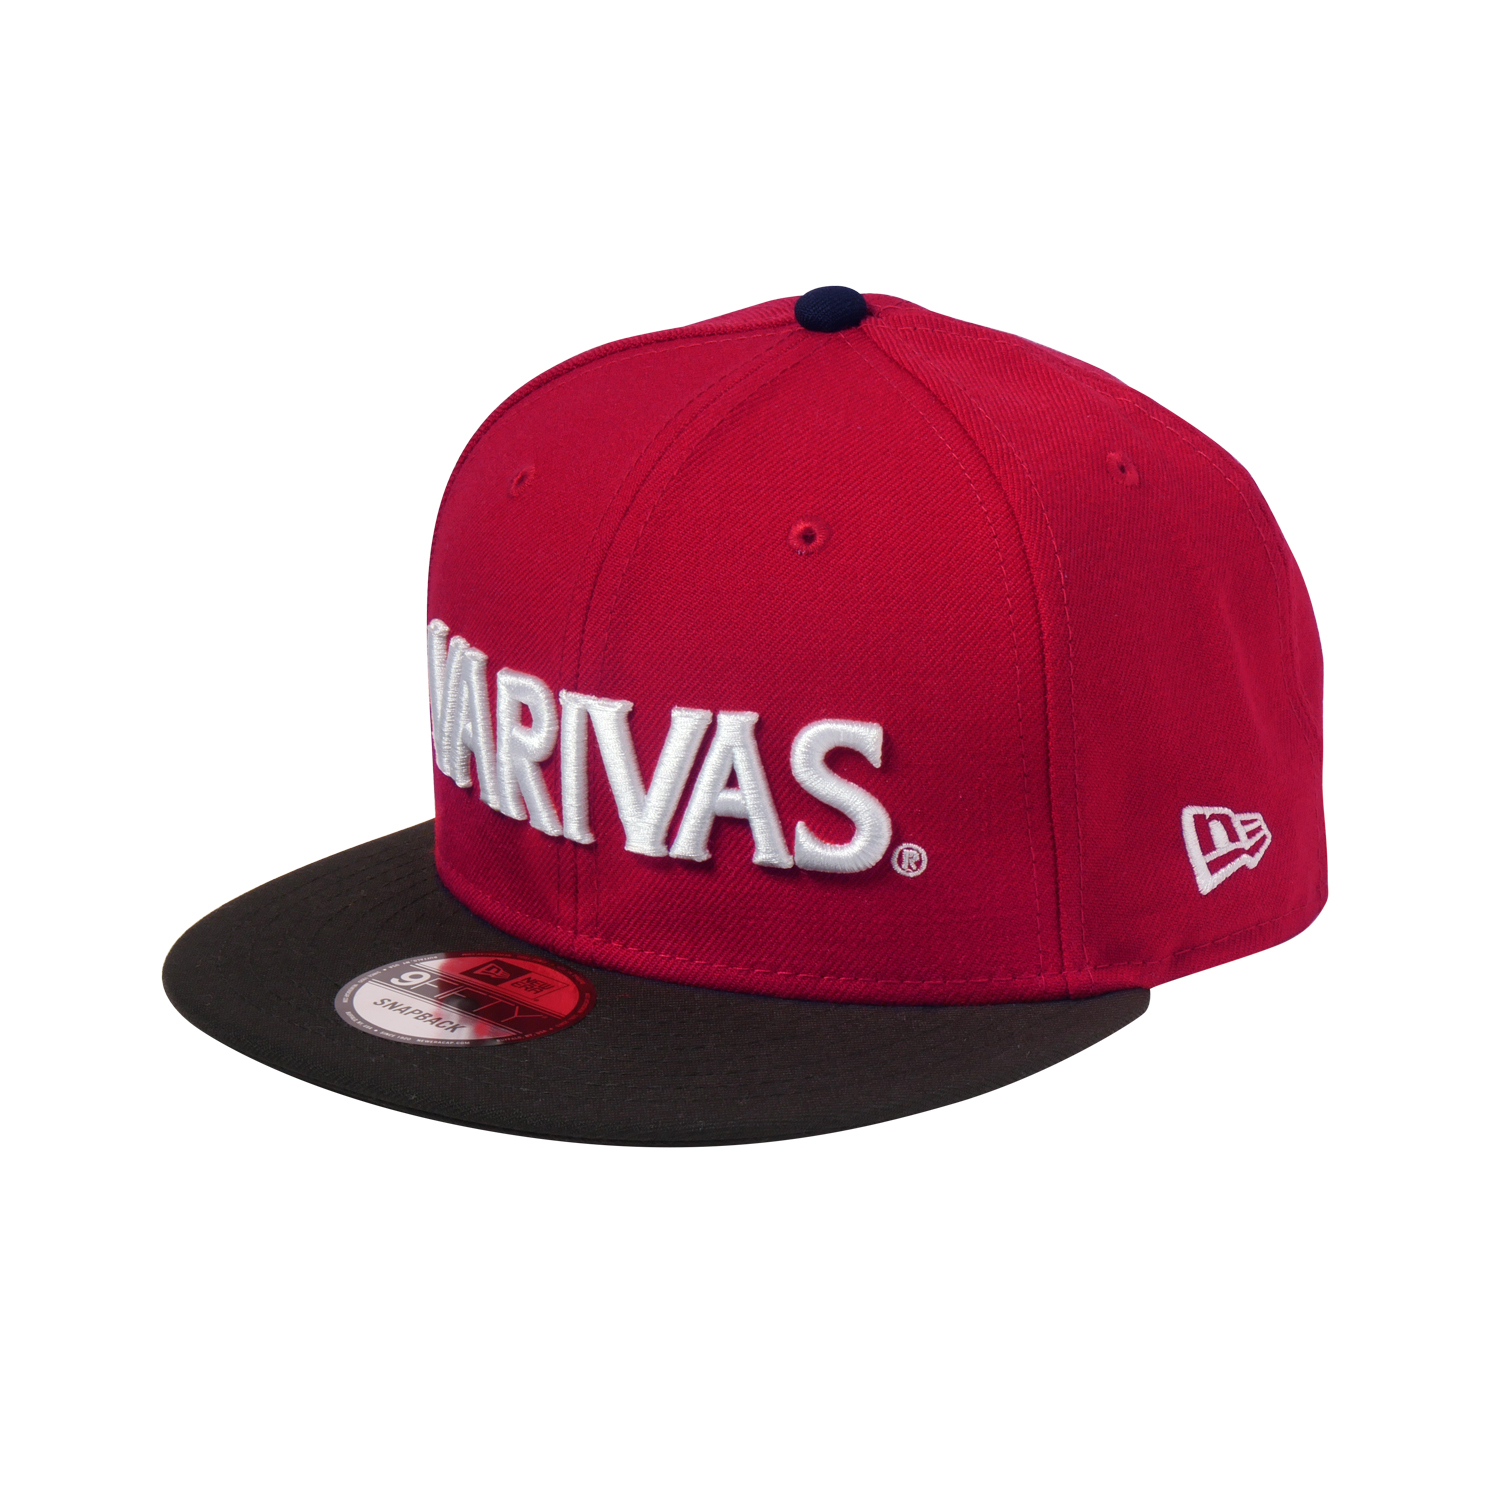 9FIFTY Snap Back Cap<br>[VAC-60]